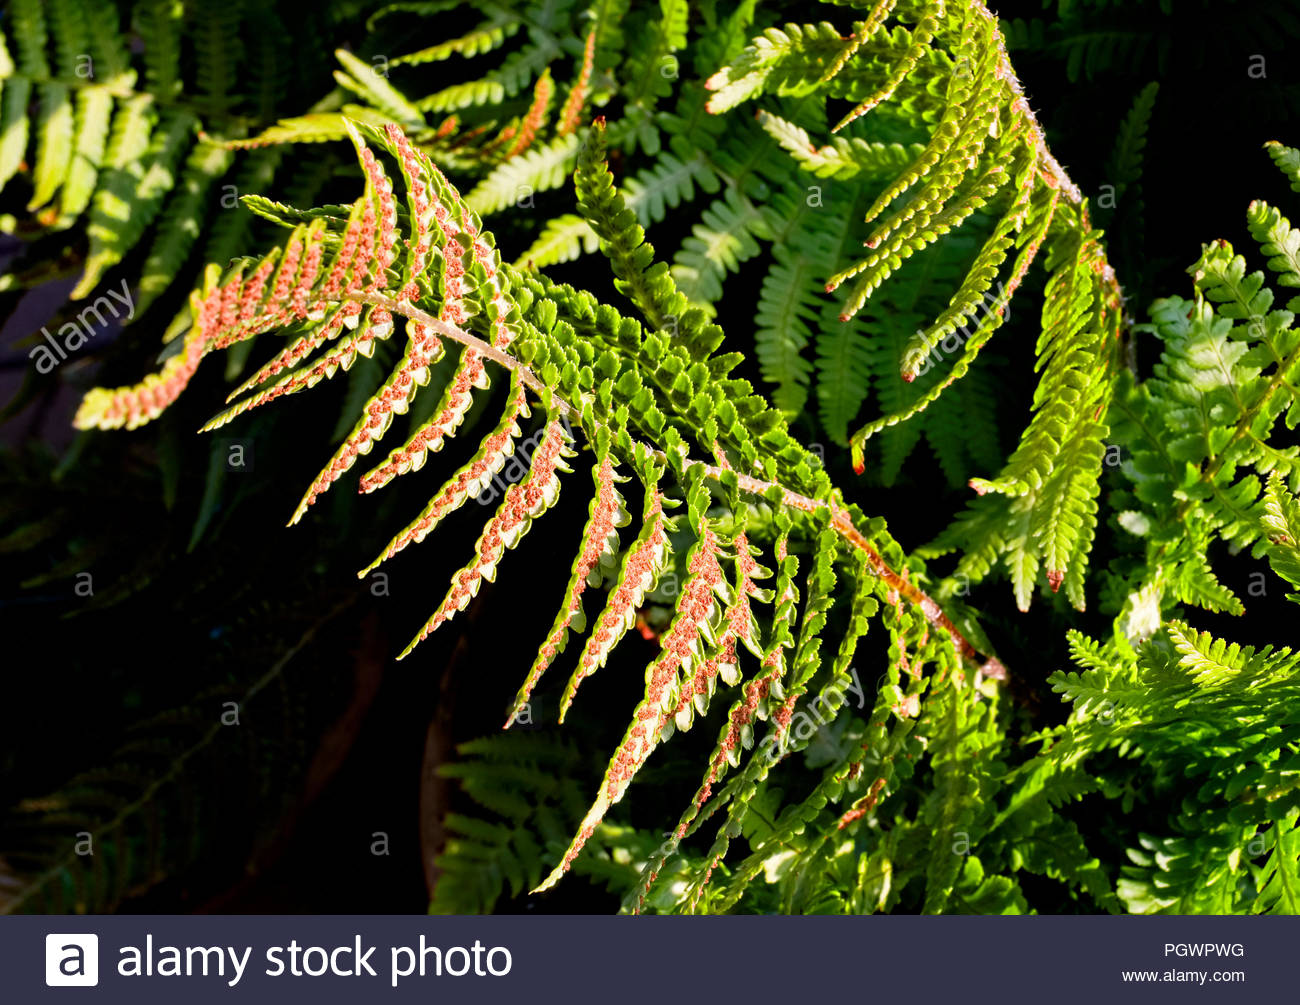 Seeds of fern (Matteuccia struthiopteris) growing on the underside of its fronds - Stock Image